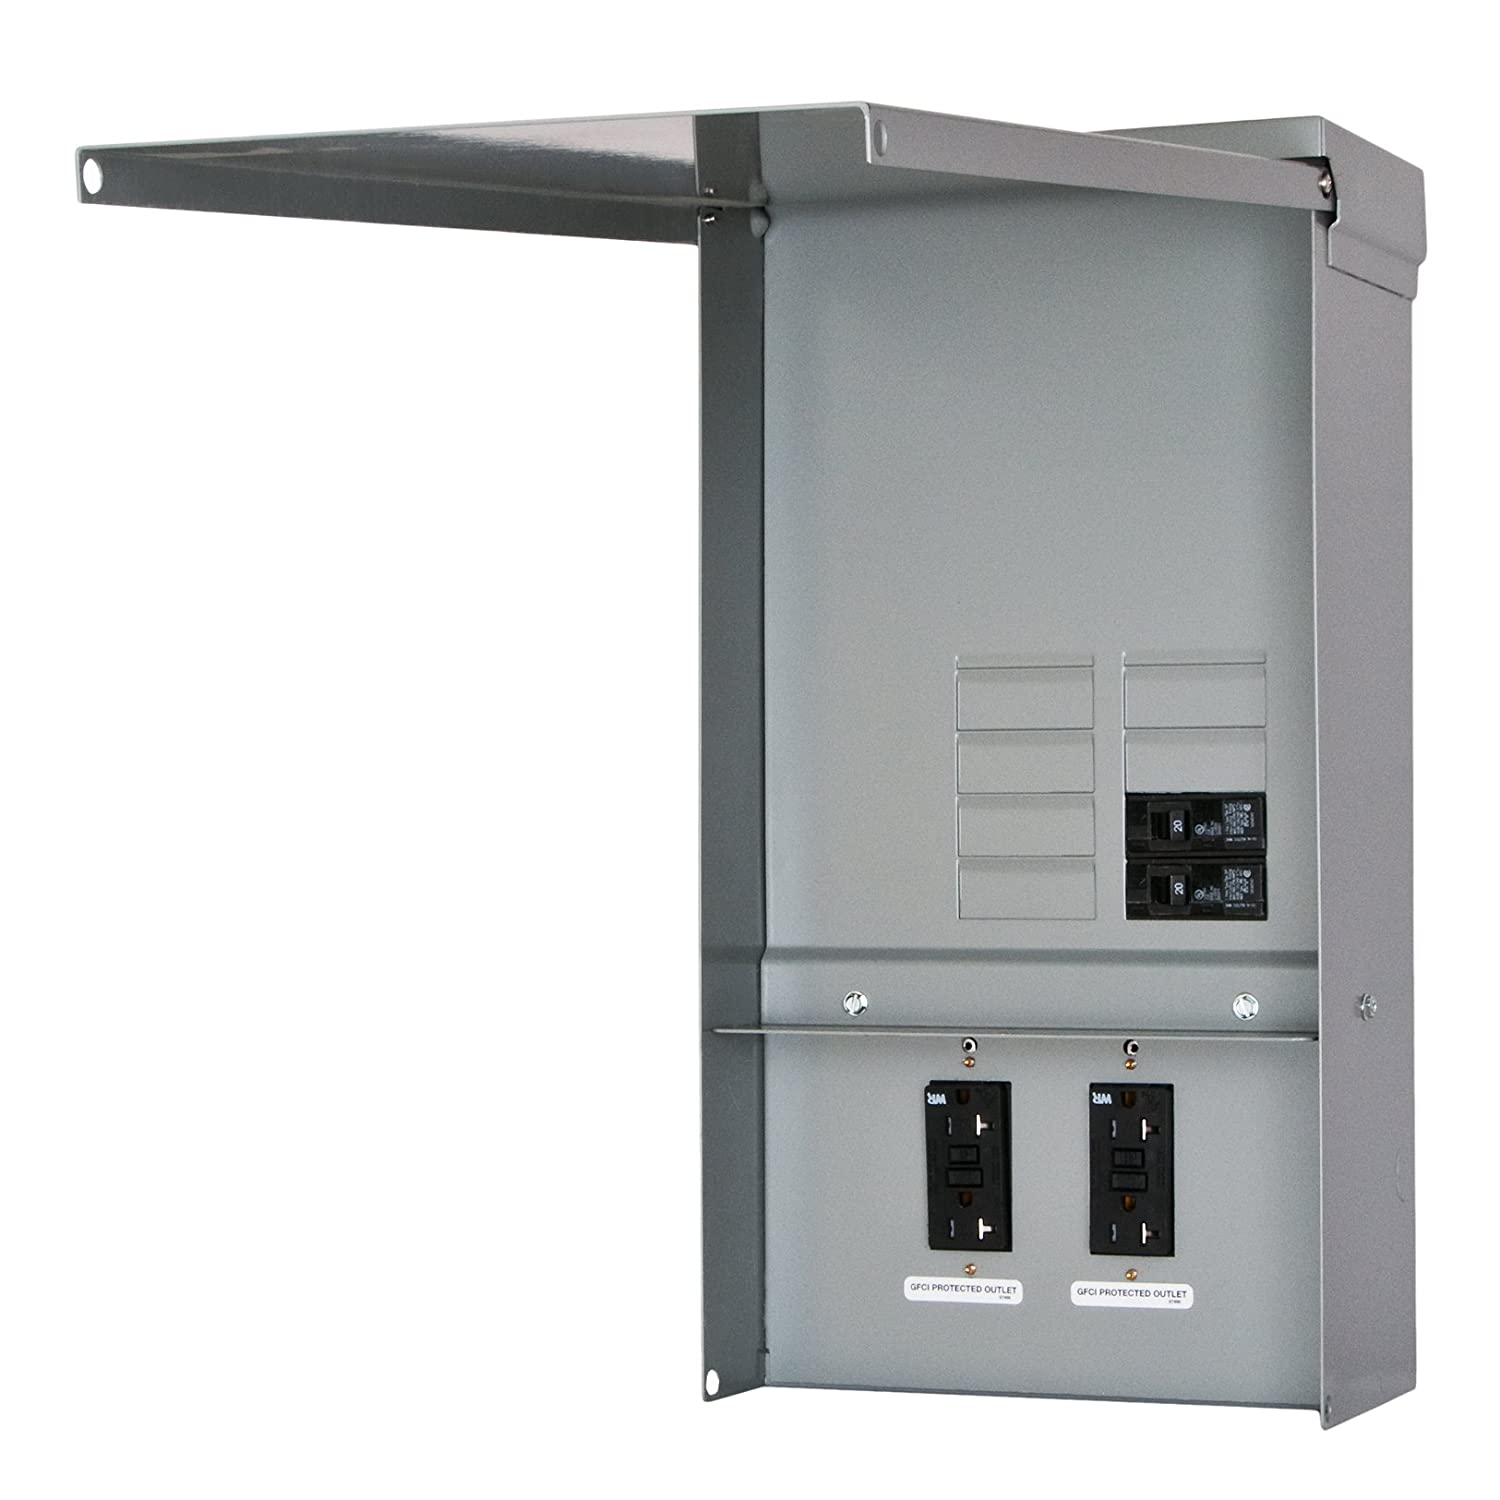 Siemens TL77US Talon Temporary Power Outlet Panel with Two 20-Amp Duplex Receptacles Installed, Unmetered